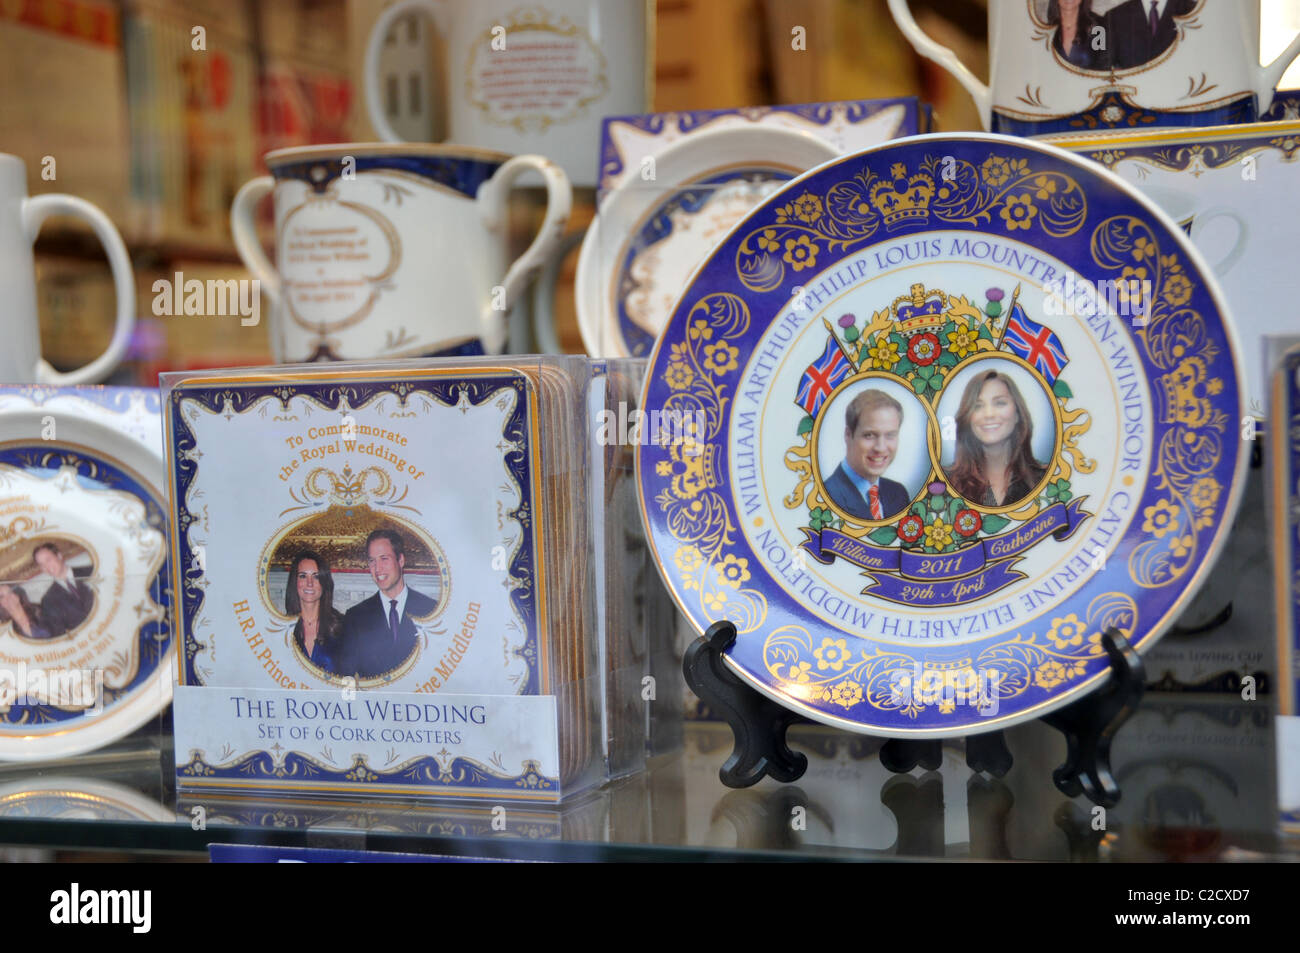 Wedding Wedding Souvenirs royal wedding souvenirs for prince william kate middleton stock mugs plates patriotic princess romantic fairy tale fairytale